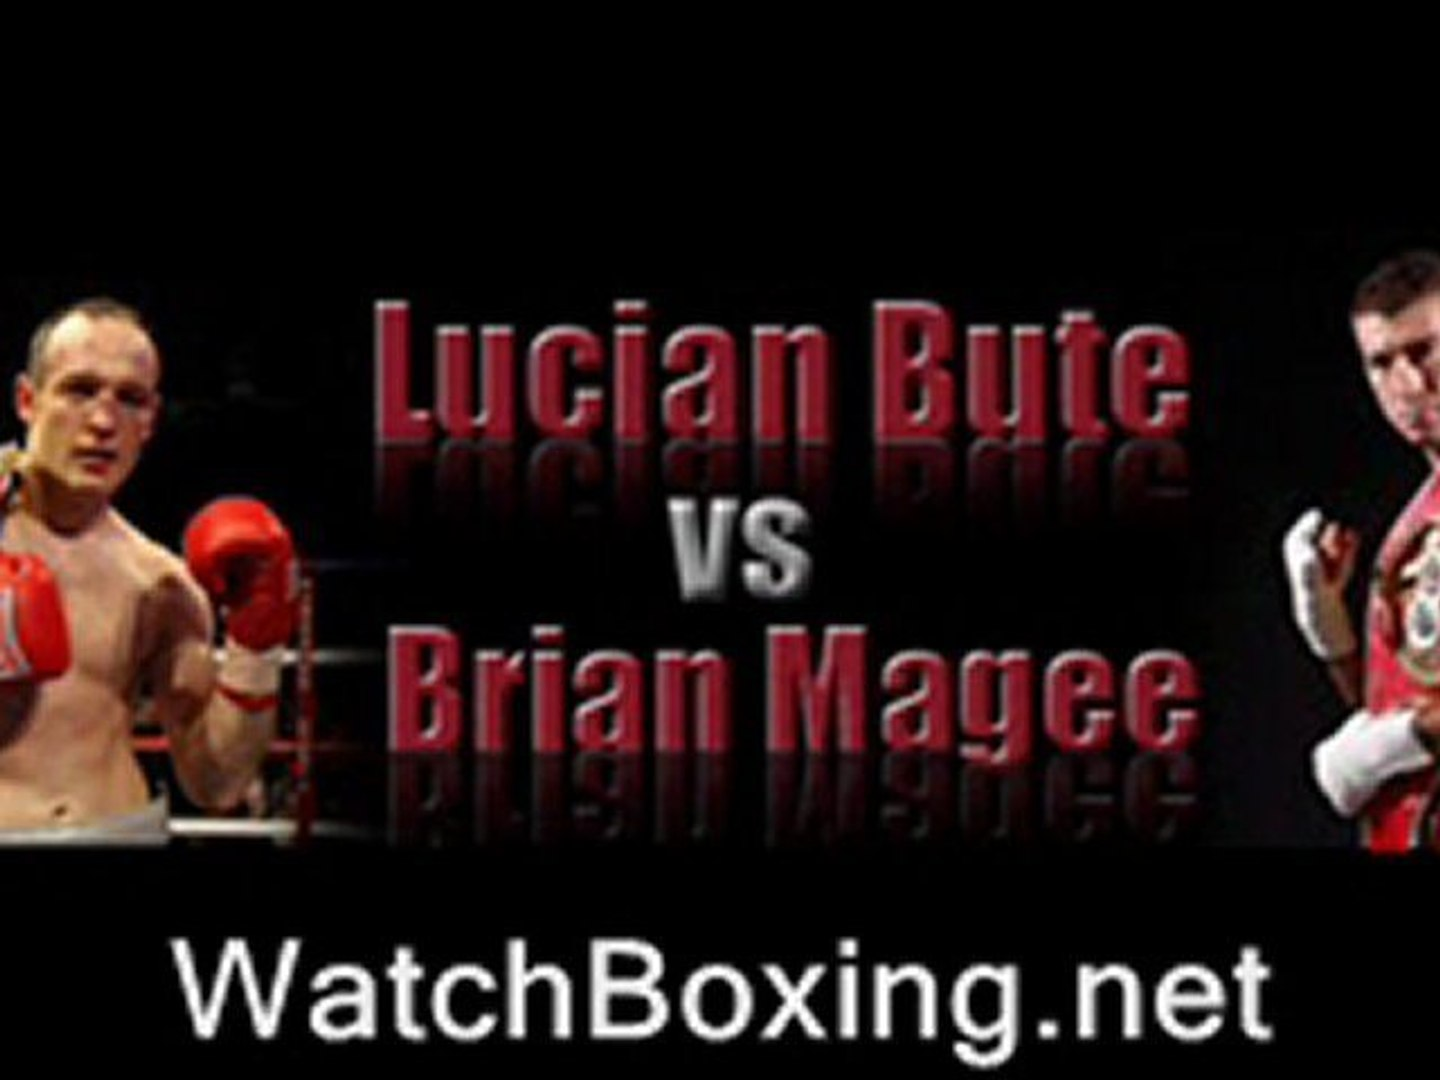 watch Lucian Bute vs Brian Magee pay per view boxing live stream online